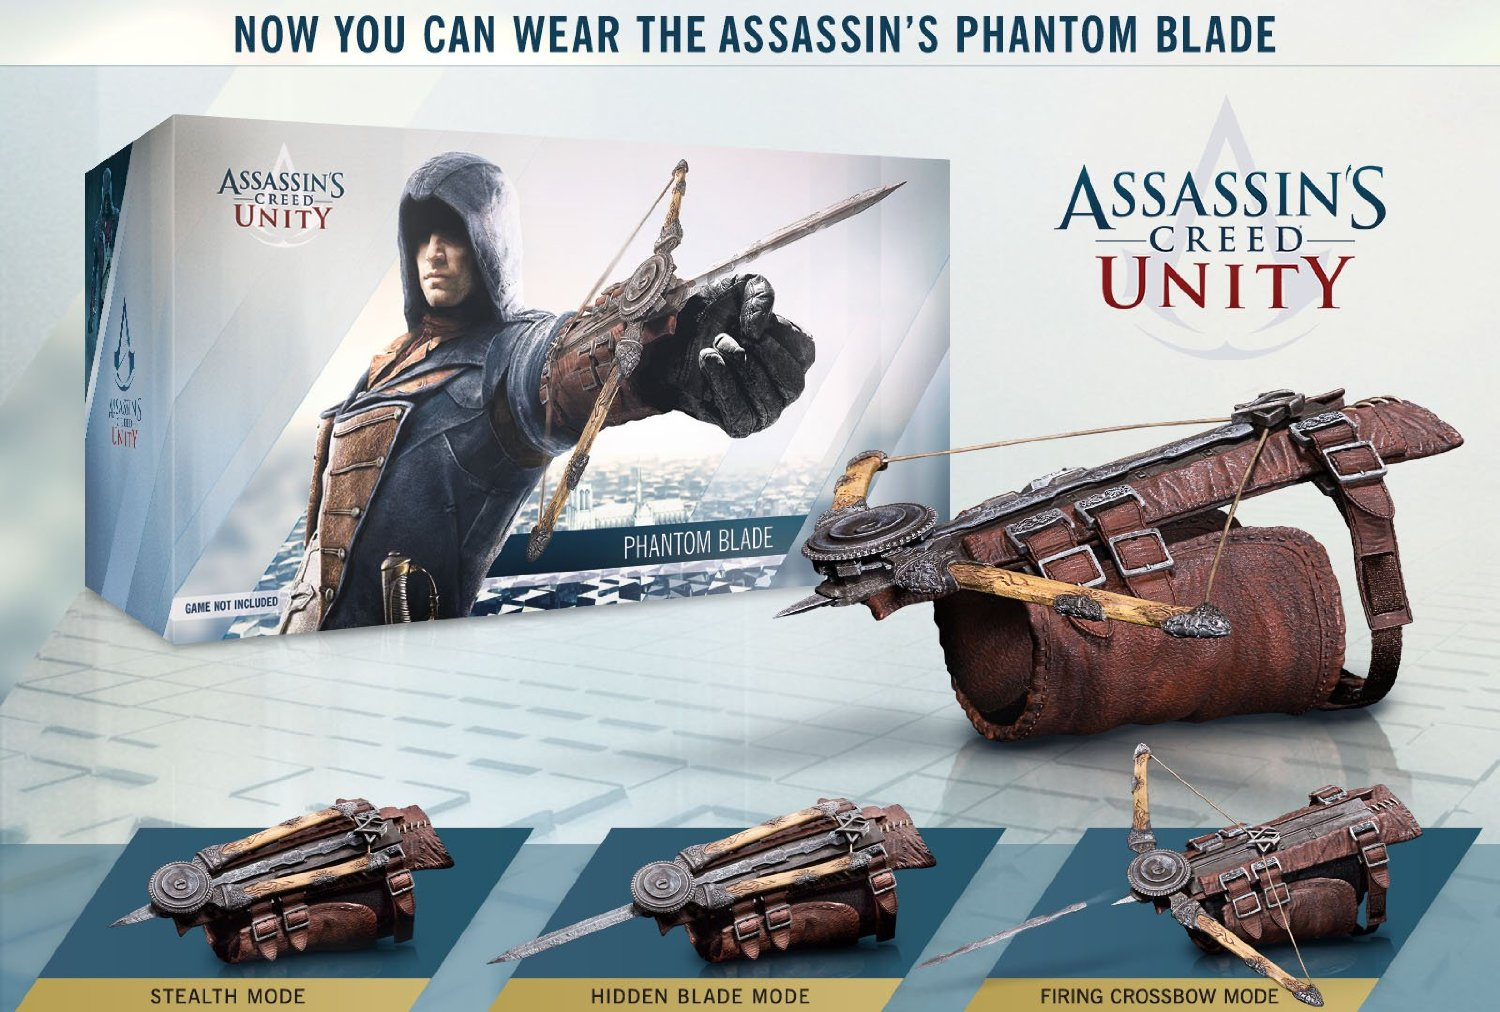 Assassins Creed 5 Unity Hidden Blade Action Figure Edward Kenway Cosplay Costume New in Retail Box new hot game assassin s creed unity edward kenway phantom blade lame fantome 1 1 scale mcfarlane hidden blade box